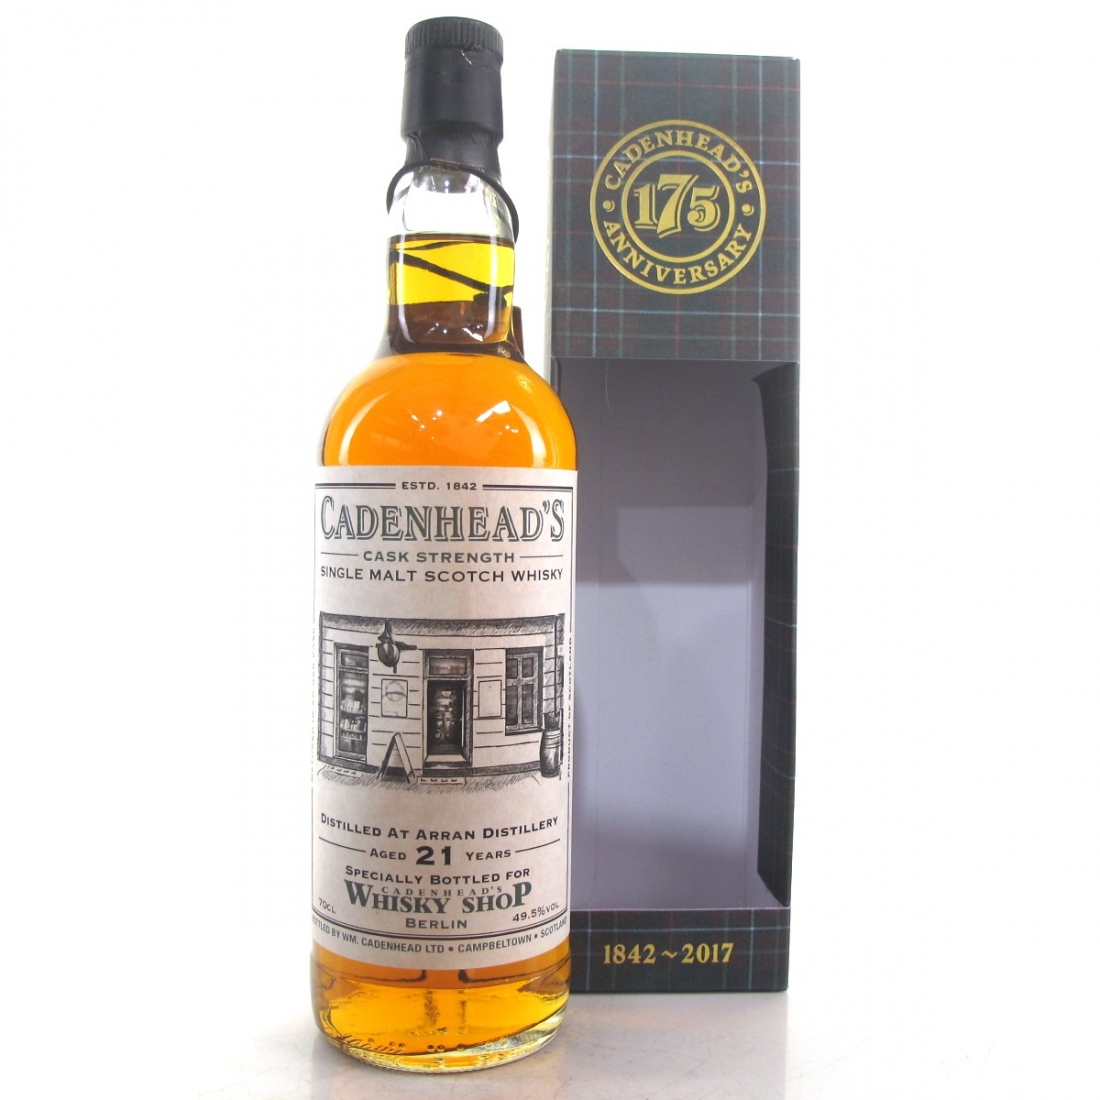 Arran 1995 Cadenhead's 21 Year Old / Berlin Shop